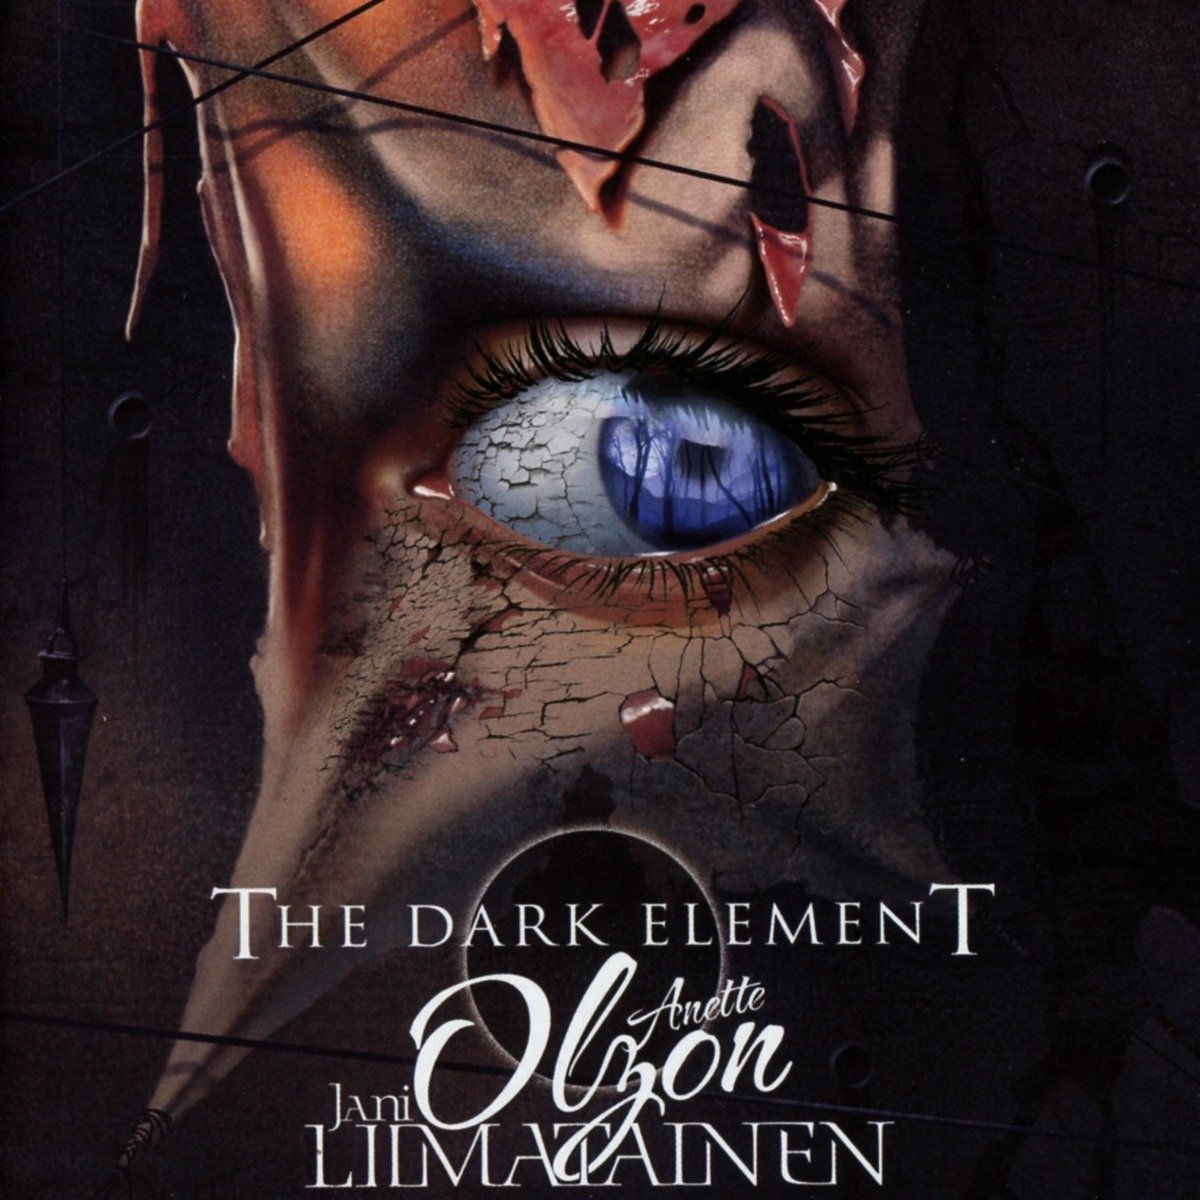 Dark Element - The Dark Element feat. Jani Liimatainen And Anette Olzon (CD)